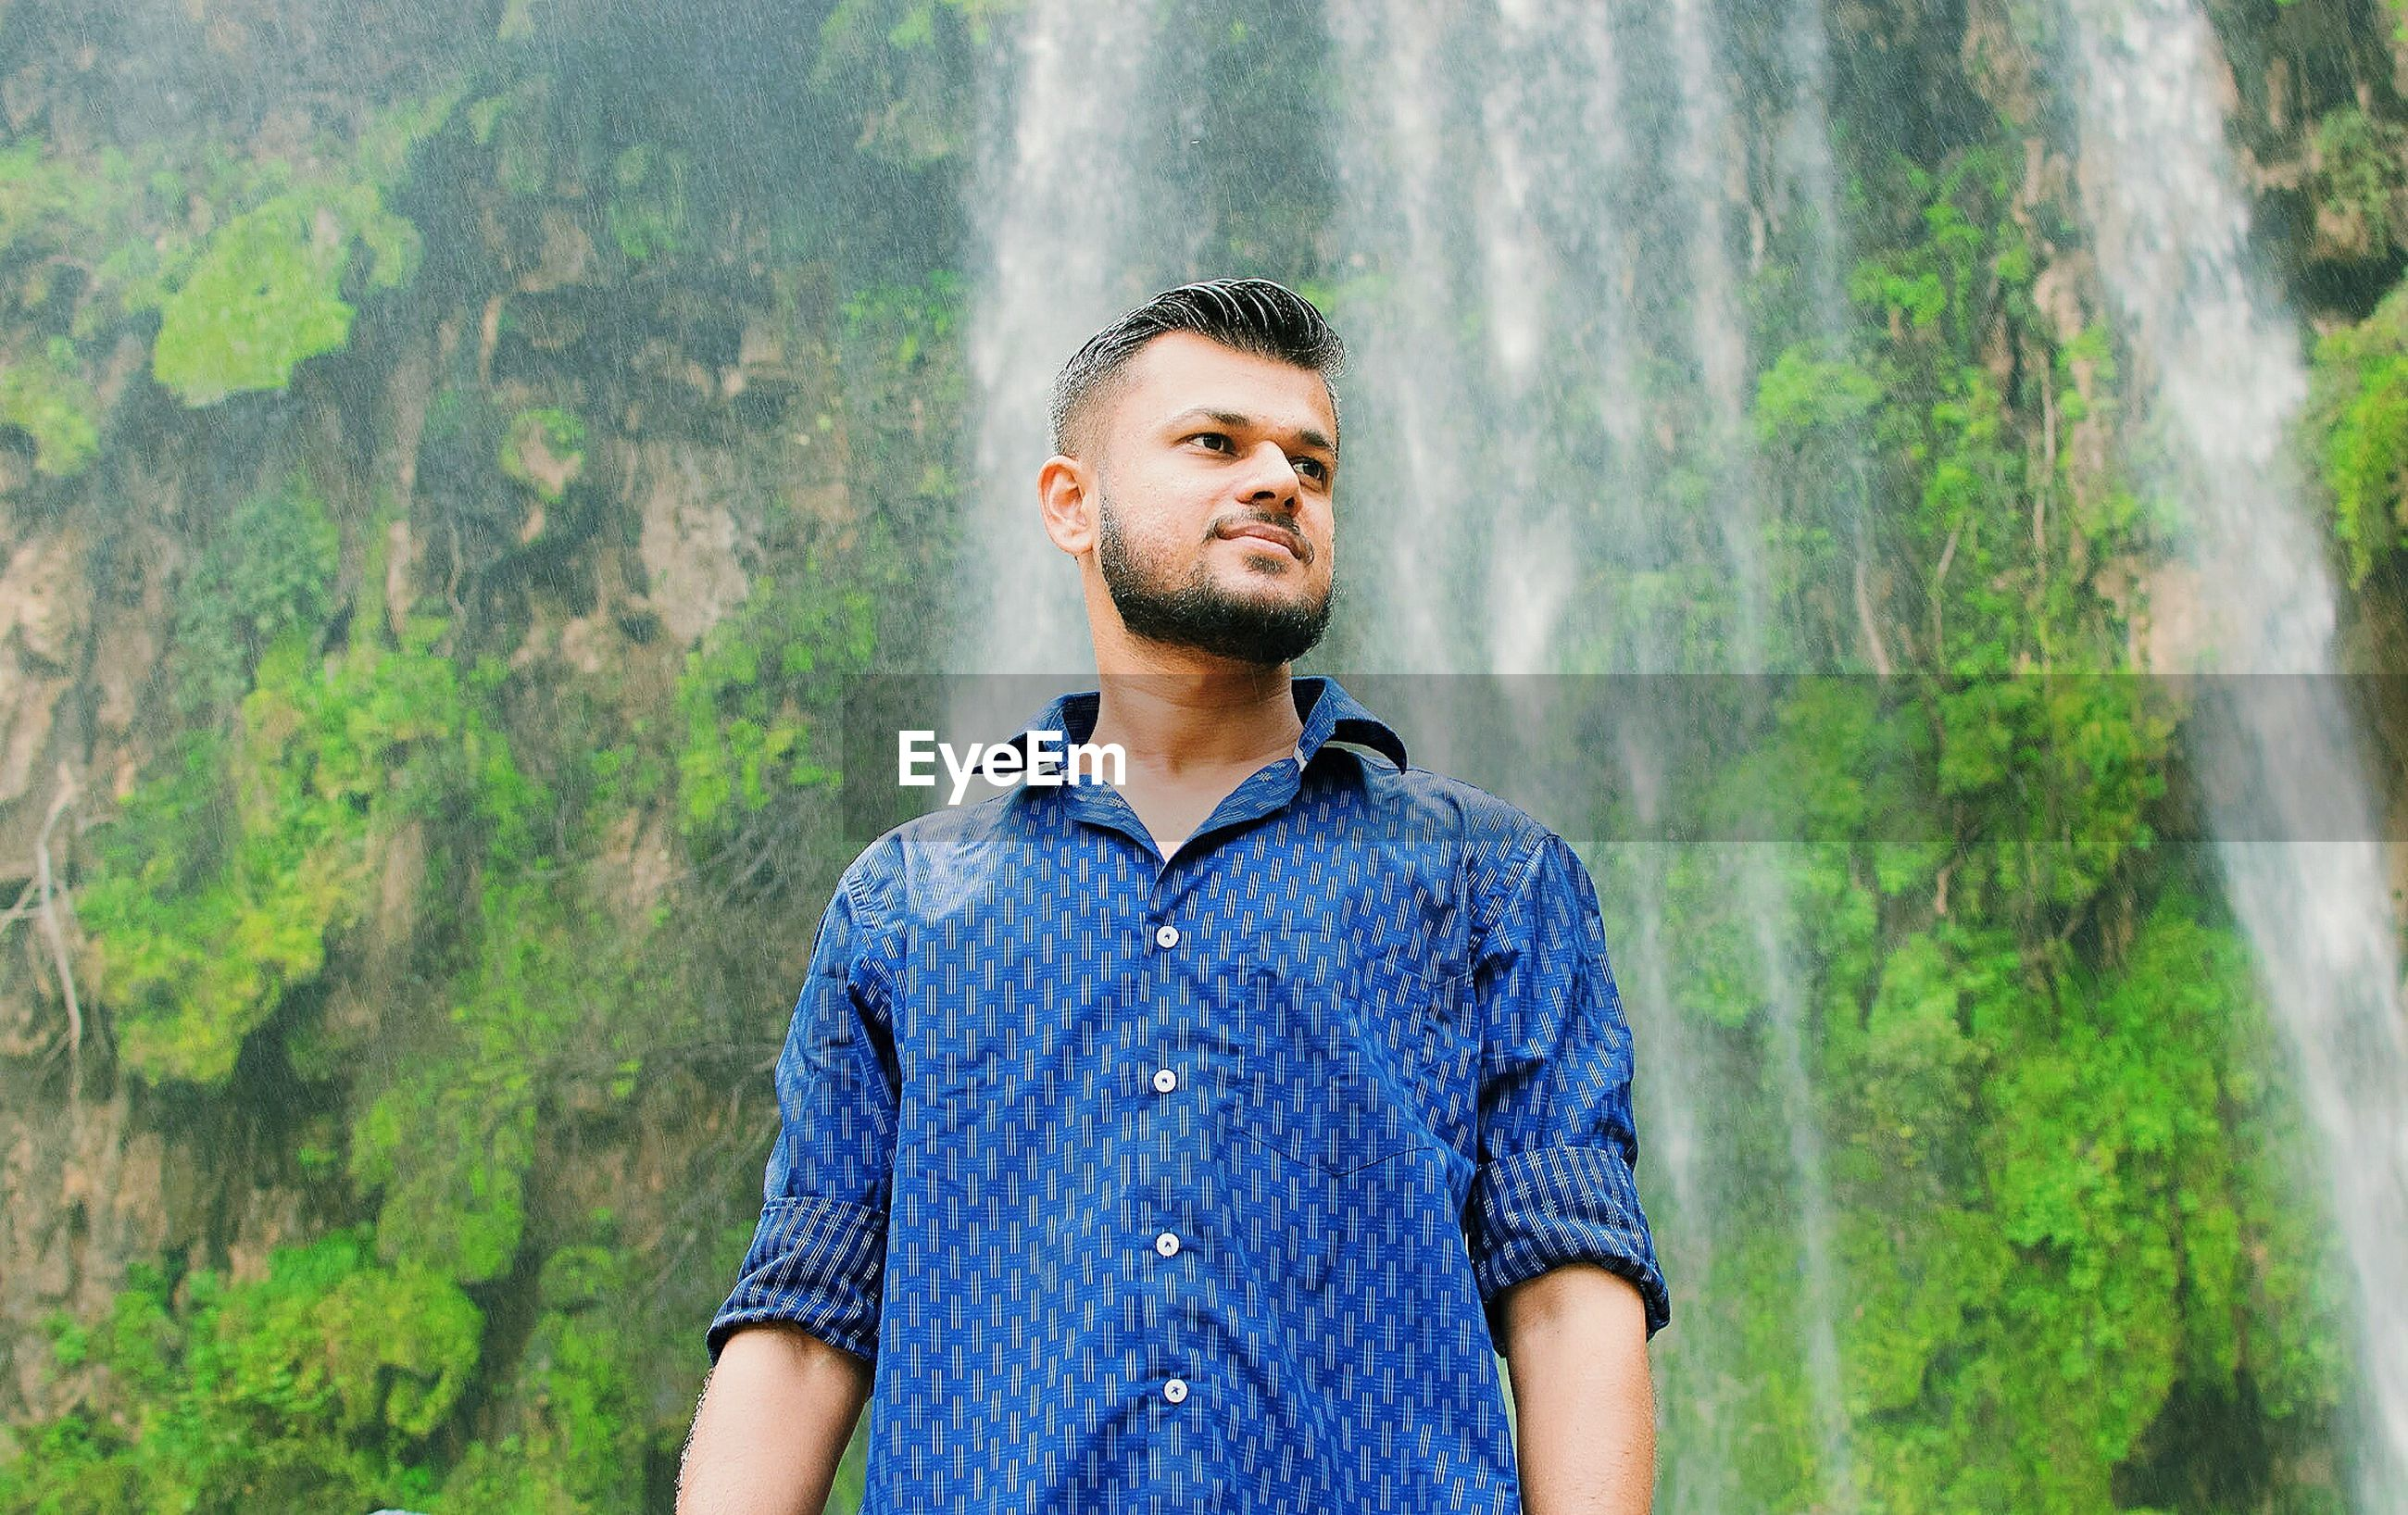 Young man standing against waterfall at forest